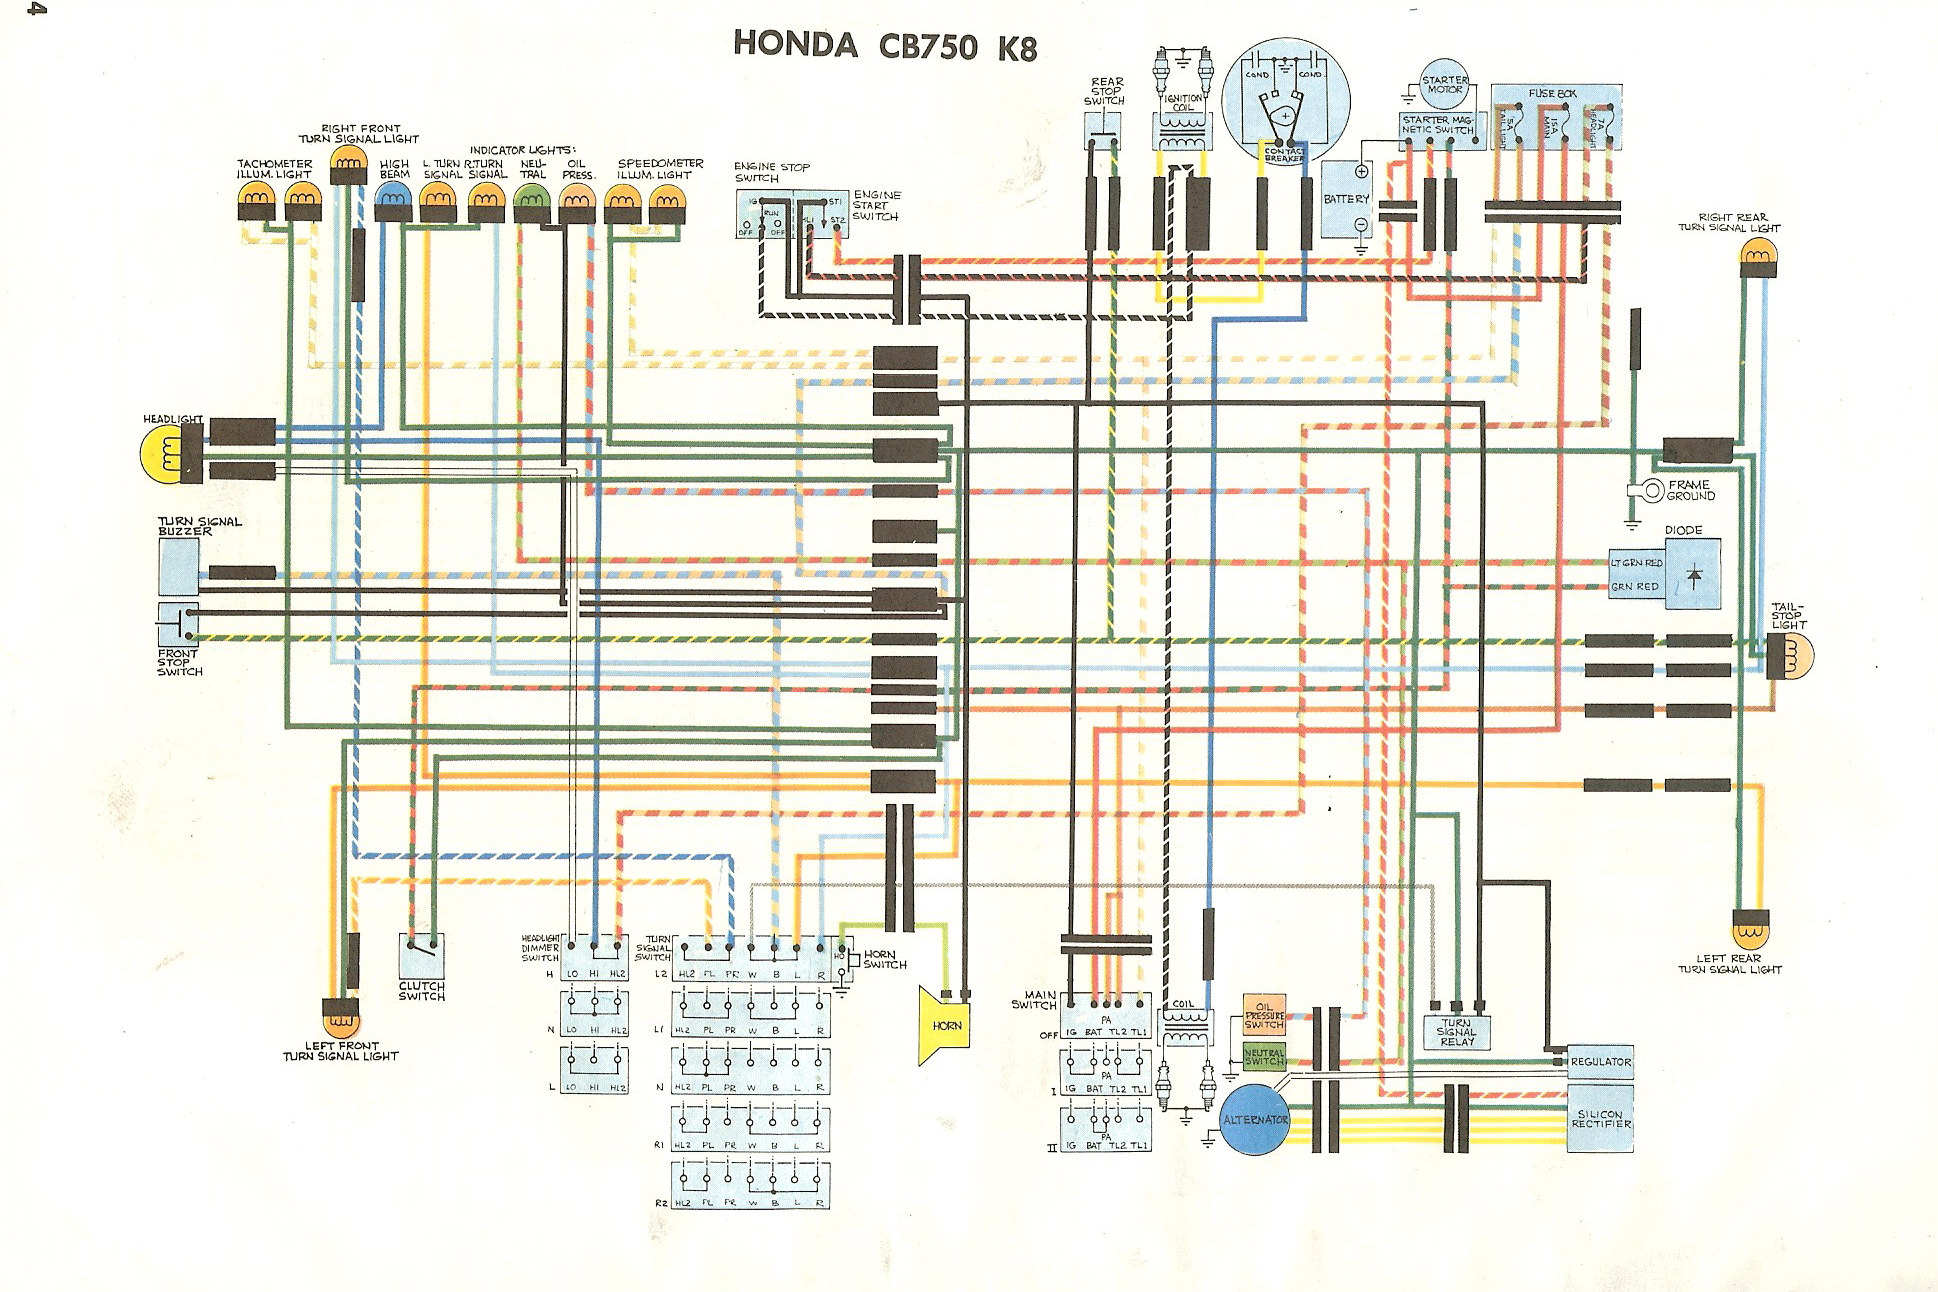 WD750K8 cb750k wiring diagram motorcycle ignition wiring diagram \u2022 wiring wiring harness honda cb750 at cos-gaming.co